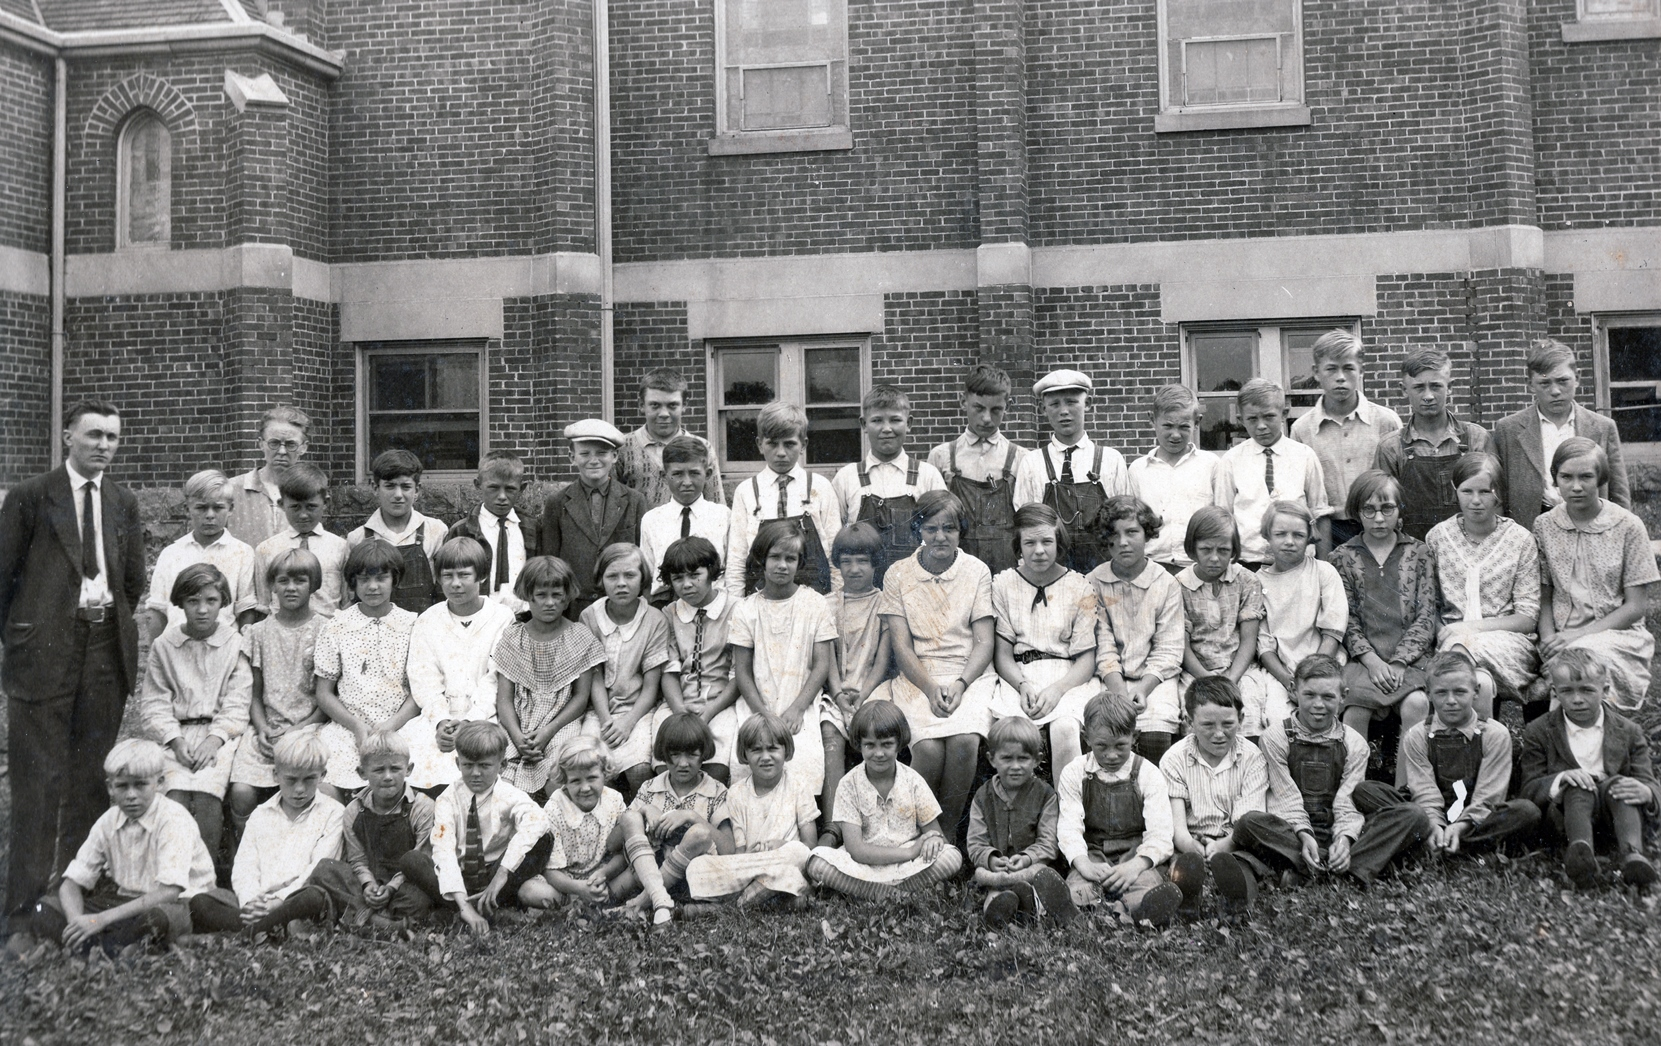 St. Paul Lutheran School was held in the church basement until 1958. This is the class of 1928-29 with Otto Loeck as teacher.